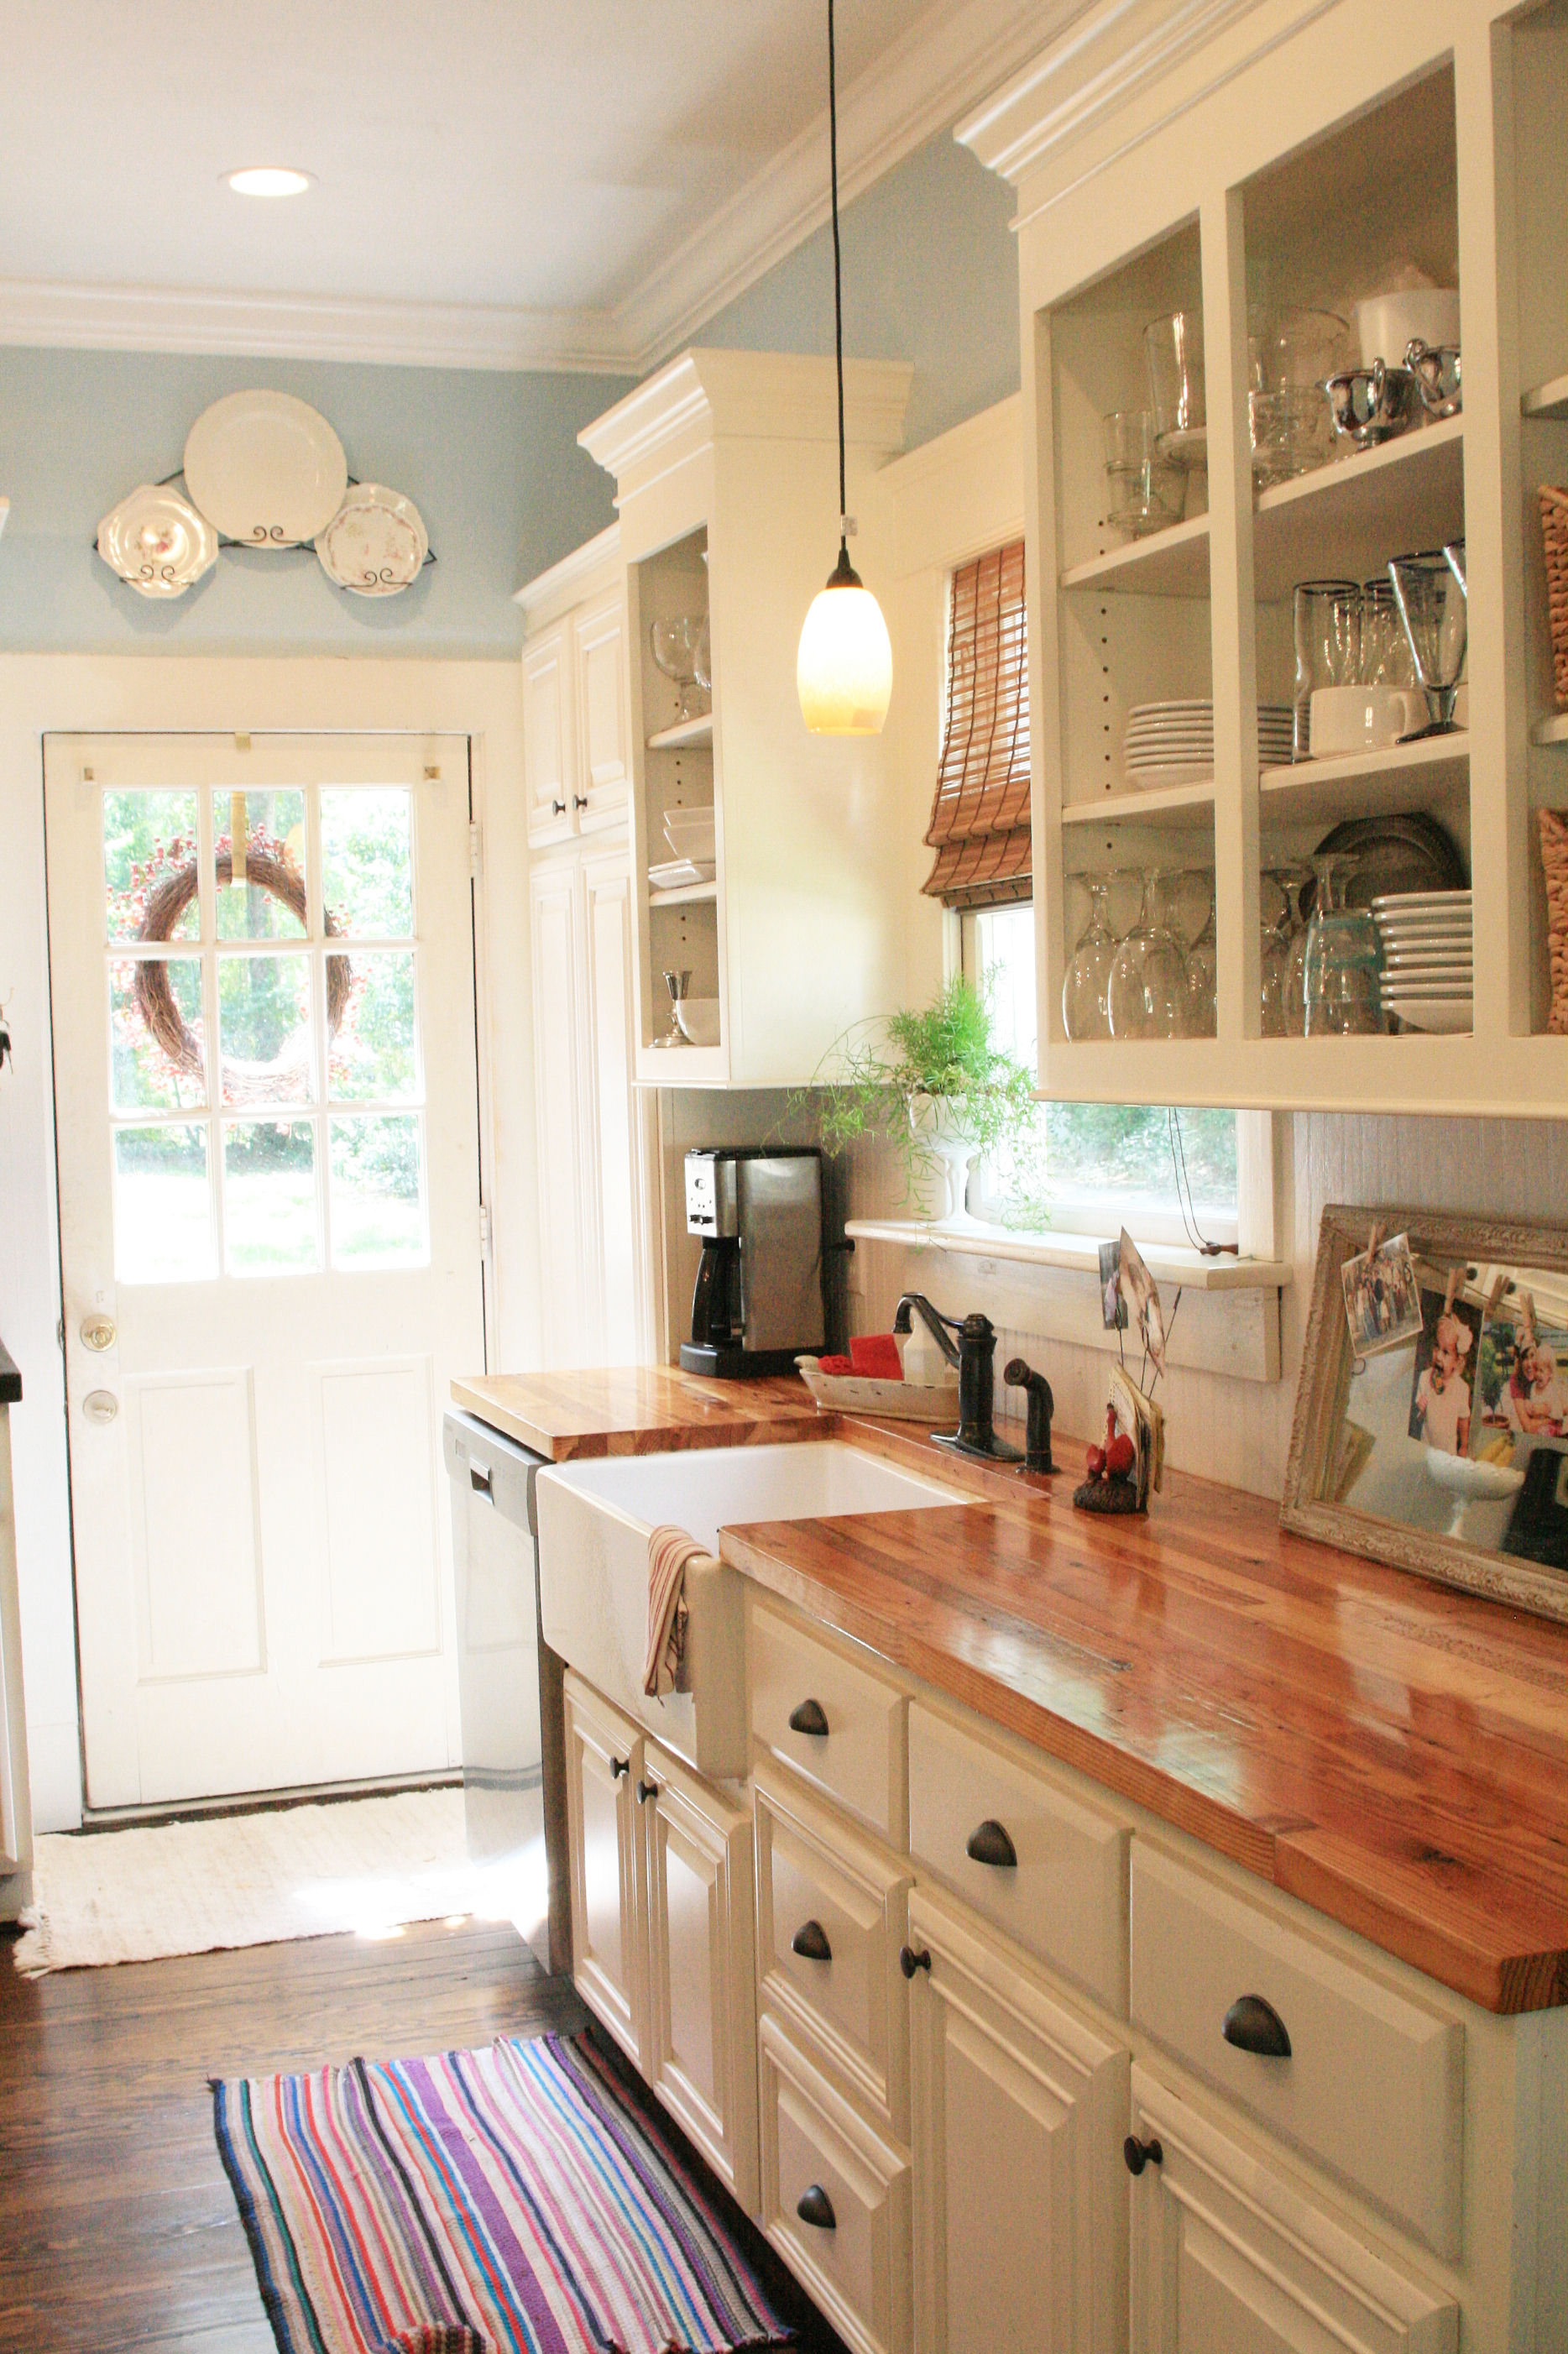 wood counters add warmth to a clean white kitchen - Country Kitchen Ideas